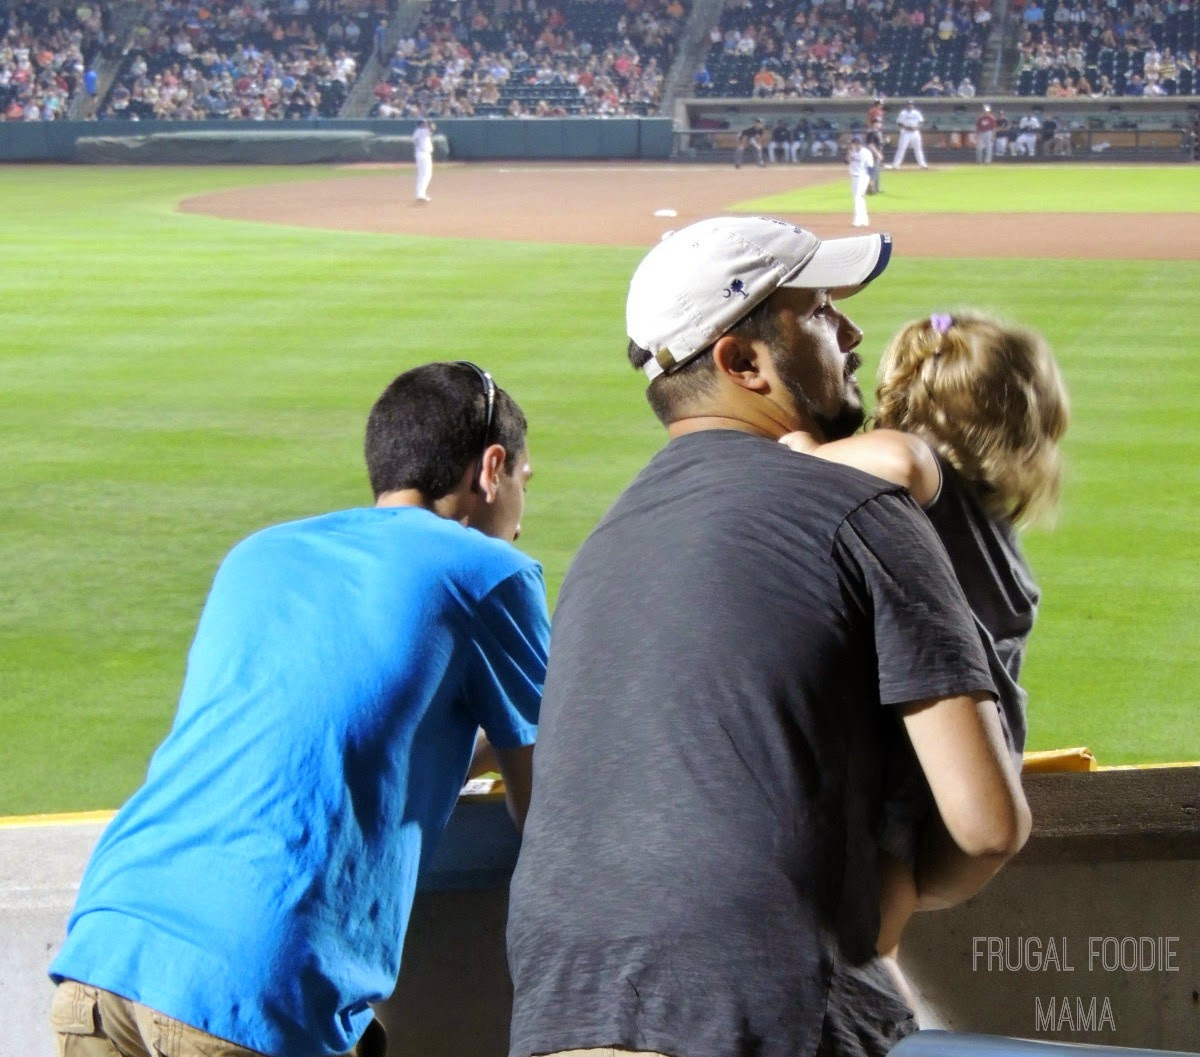 You can't go wrong with a budget friendly and Columbus Clippers game- Columbus, OH via thefrugalfoodiemama.com #familytravel